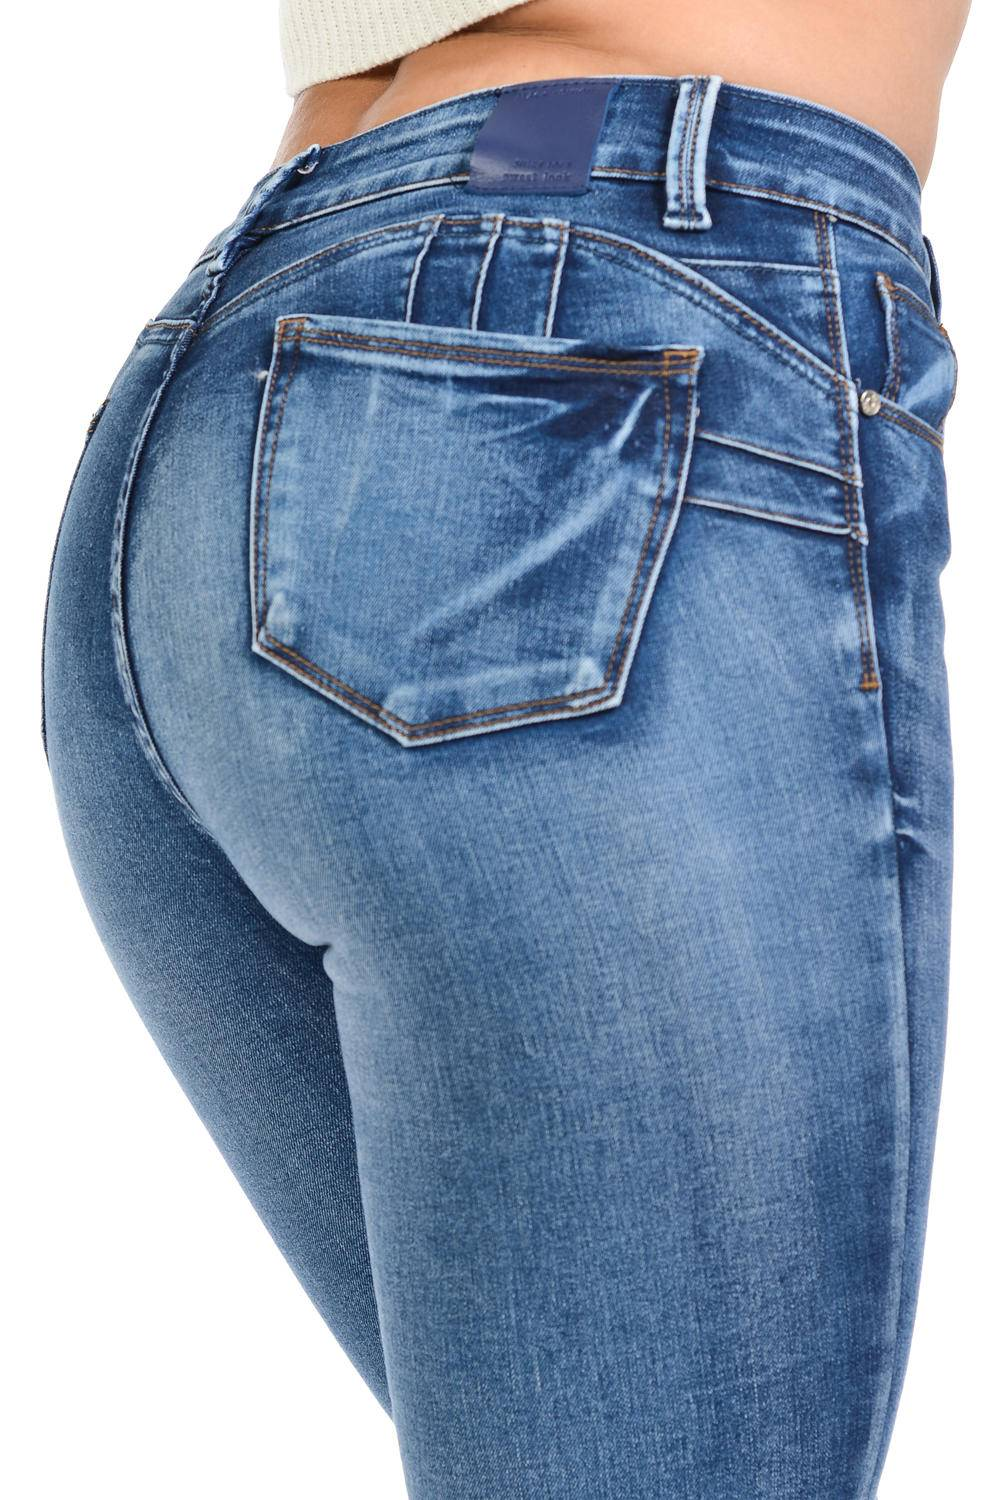 new arrival b700b ecfb7 Sweet Look Black Edition Women's Jeans · Push Up · High Waist · Style A280